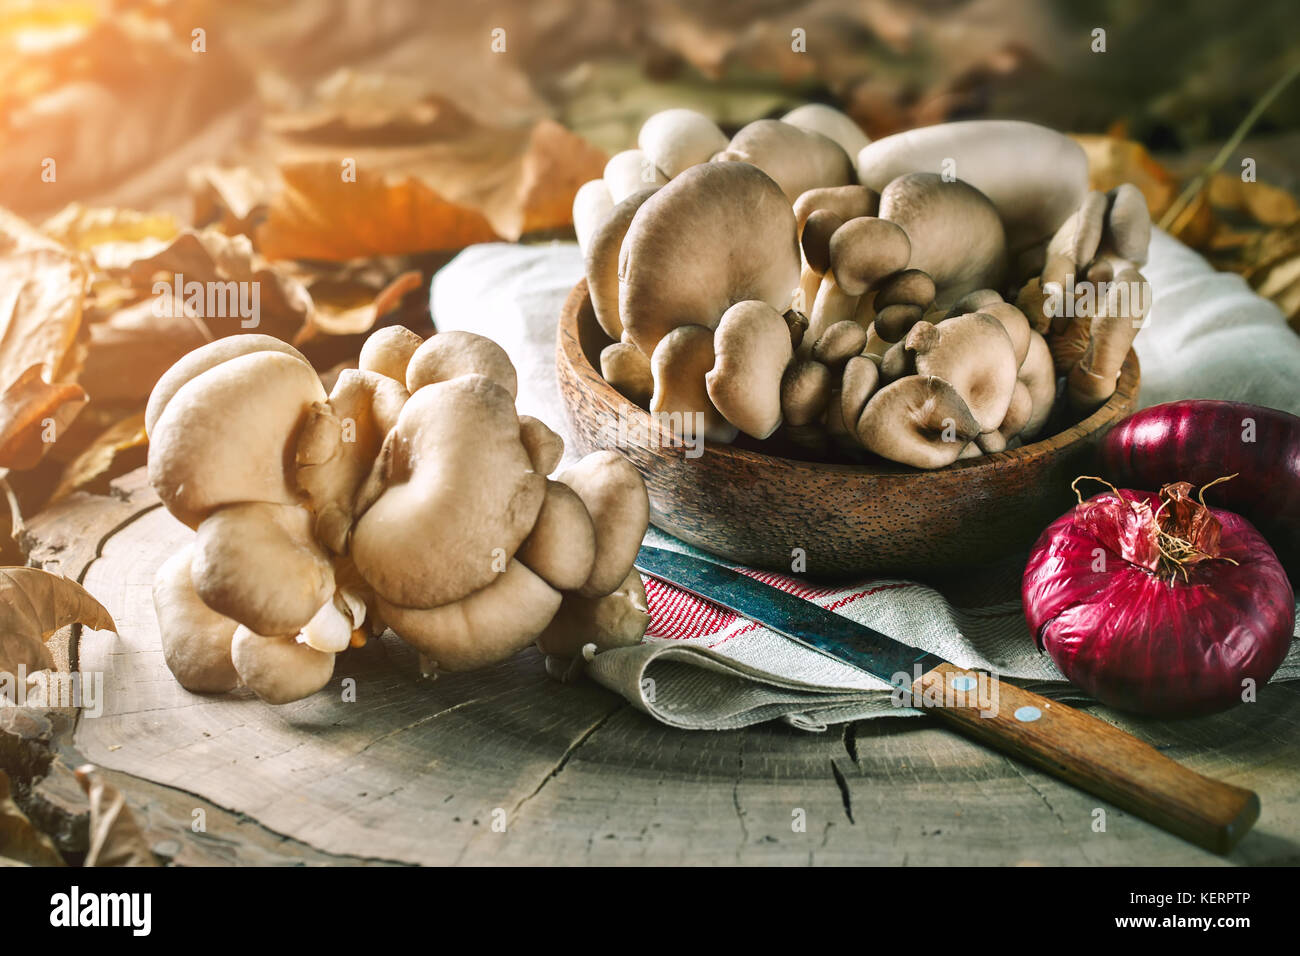 Raw mushrooms on the stump and autumn leaves. Autumn still-life. Selective focus. Autumn background. - Stock Image